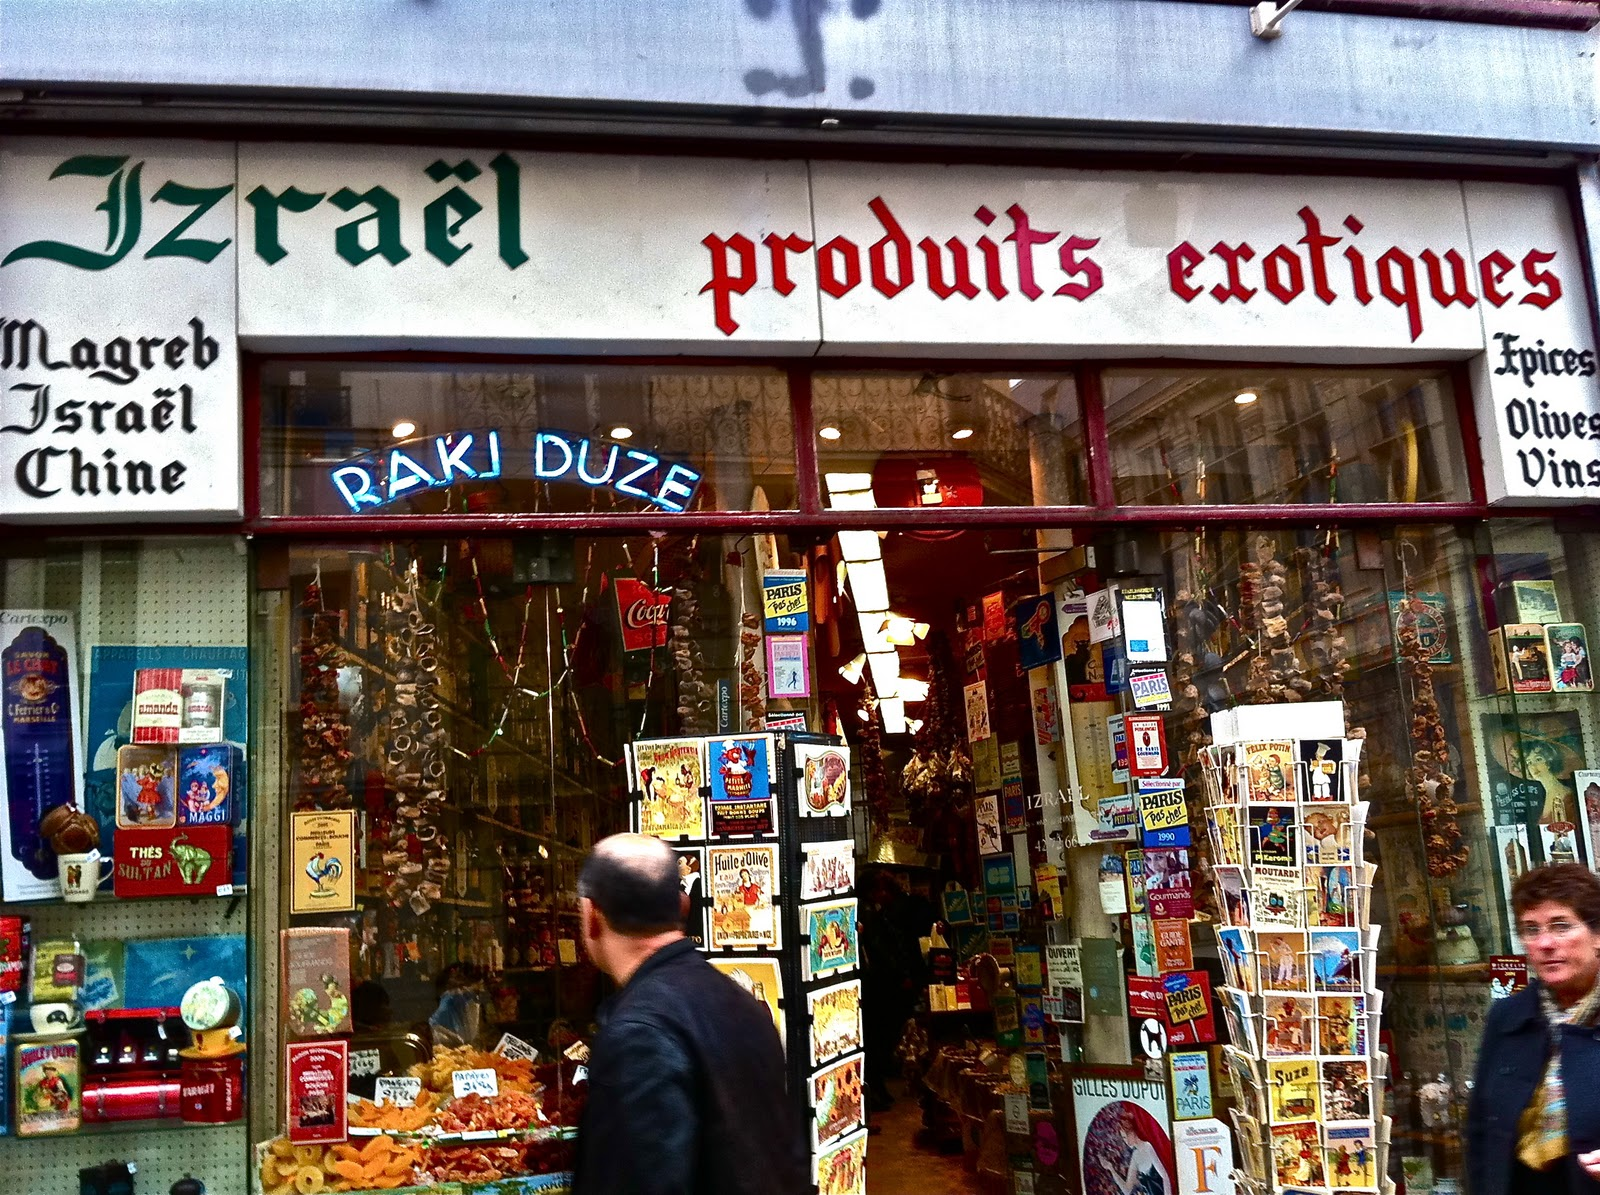 Izrael Image: Not Drinking Poison In Paris: Cocktail Curiosity Shop